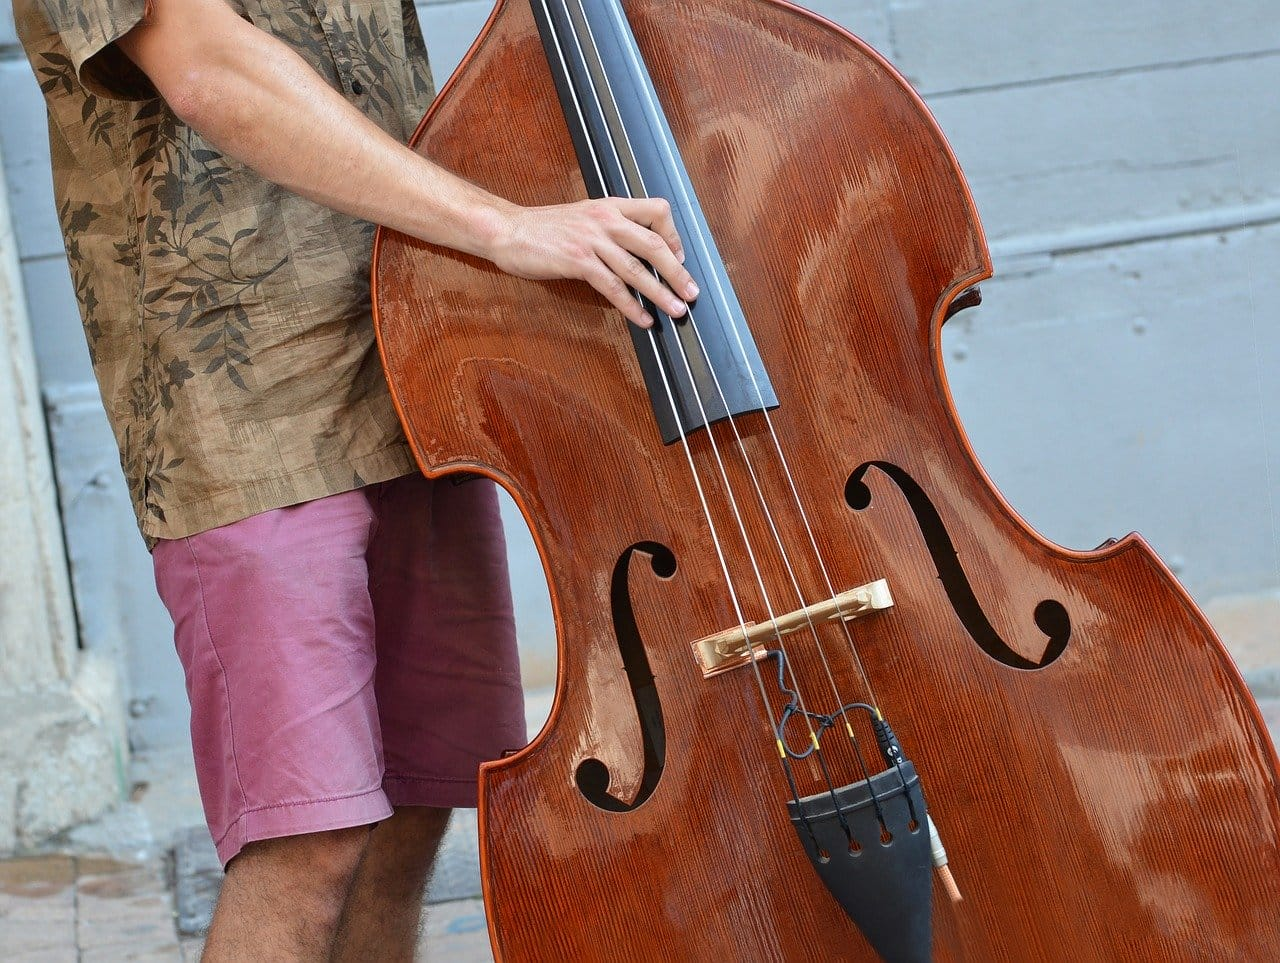 Double bass - 10 hardest instruments to play